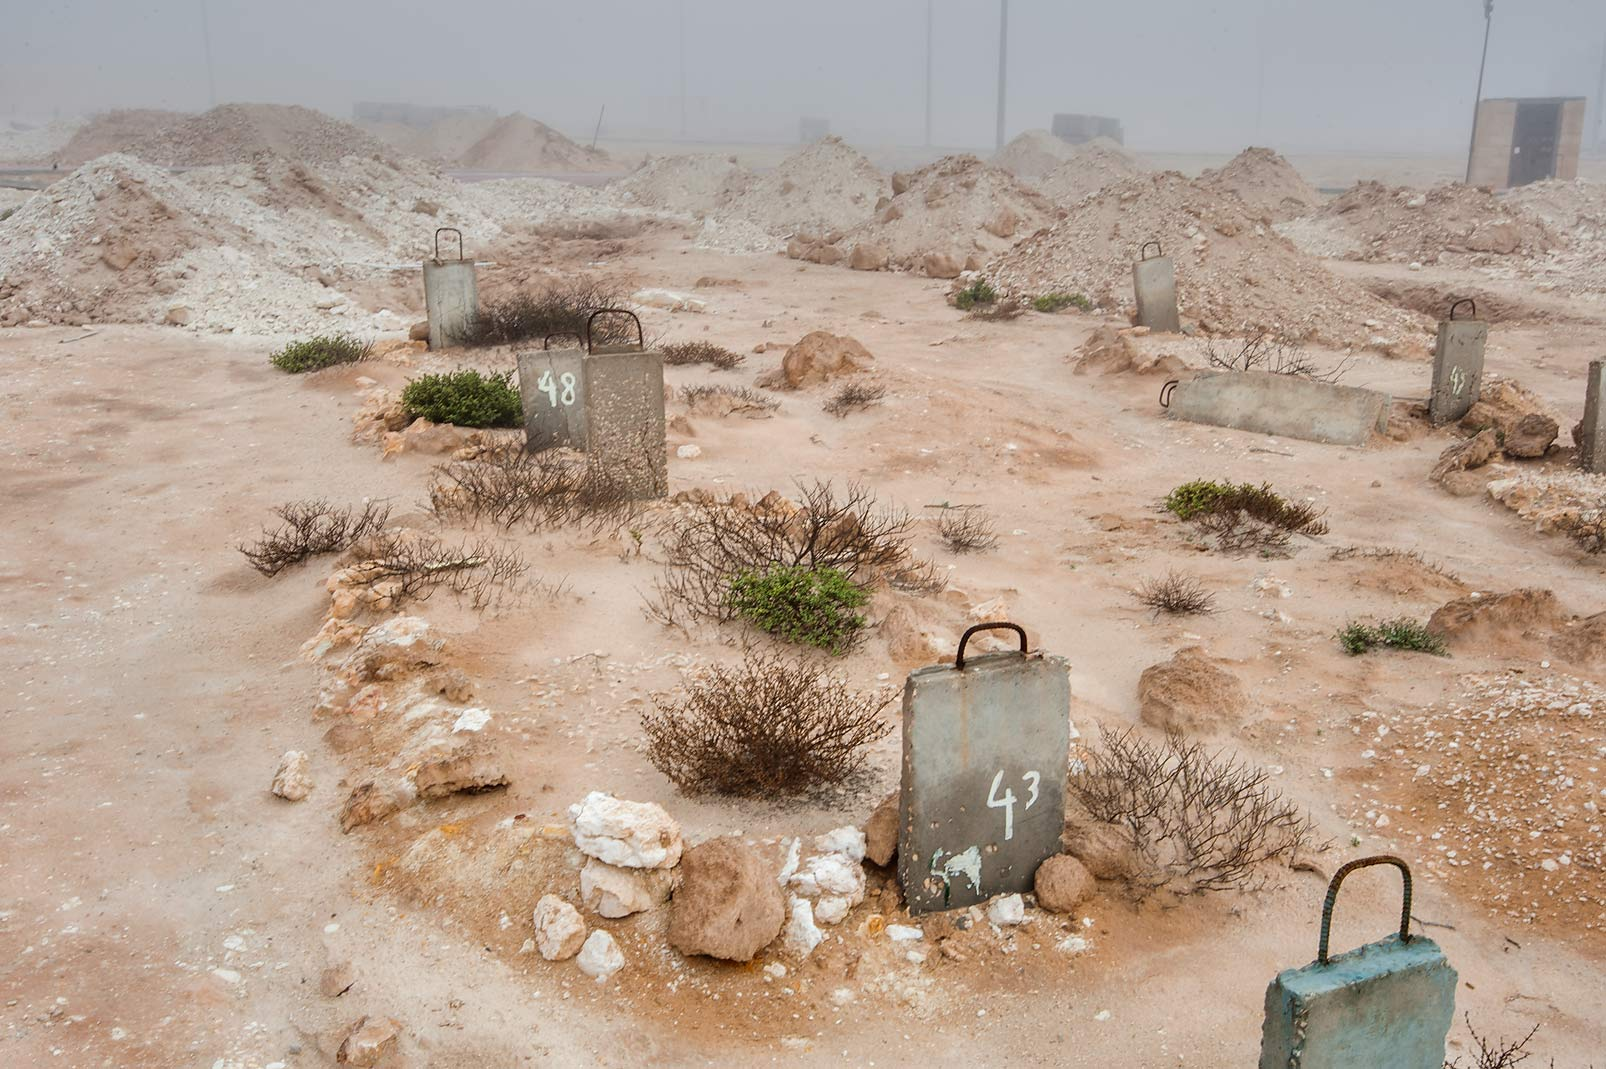 Tombs No 43 and 48 of Al Khor Cemetery in mist. North from Al Khor, Qatar